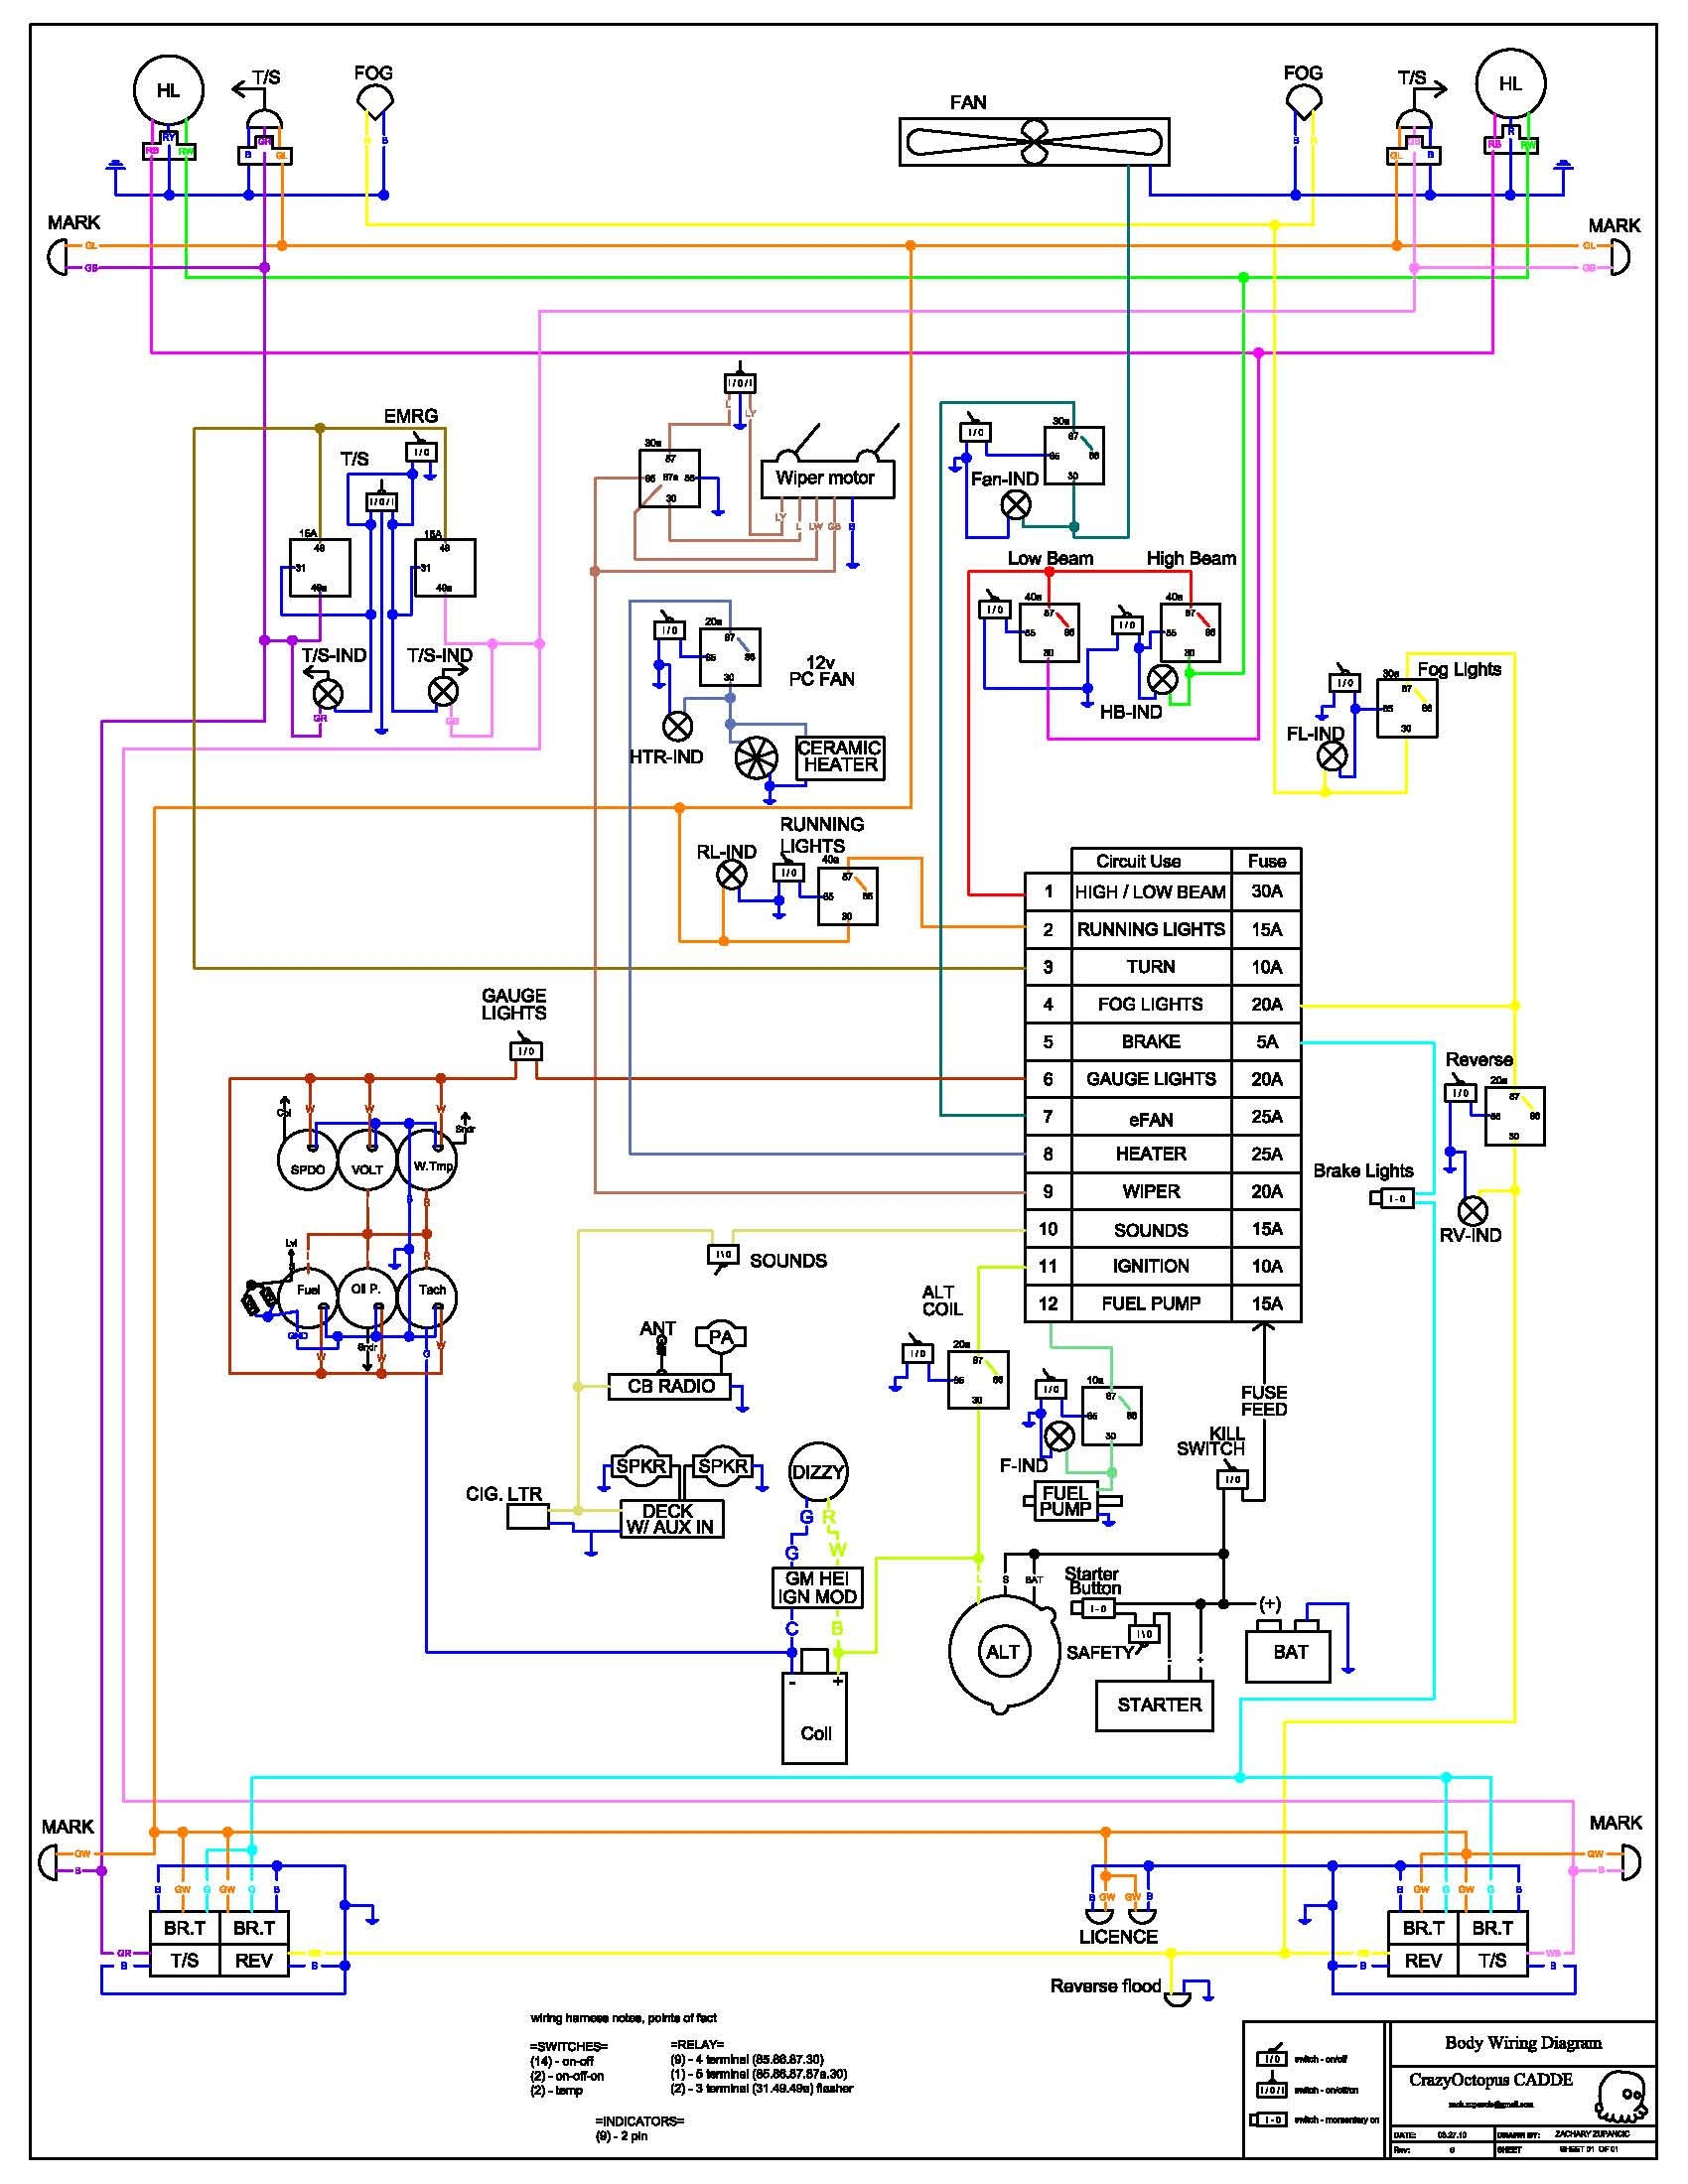 Ccrm Location The Site Share Images About Complete Wiring Diagram